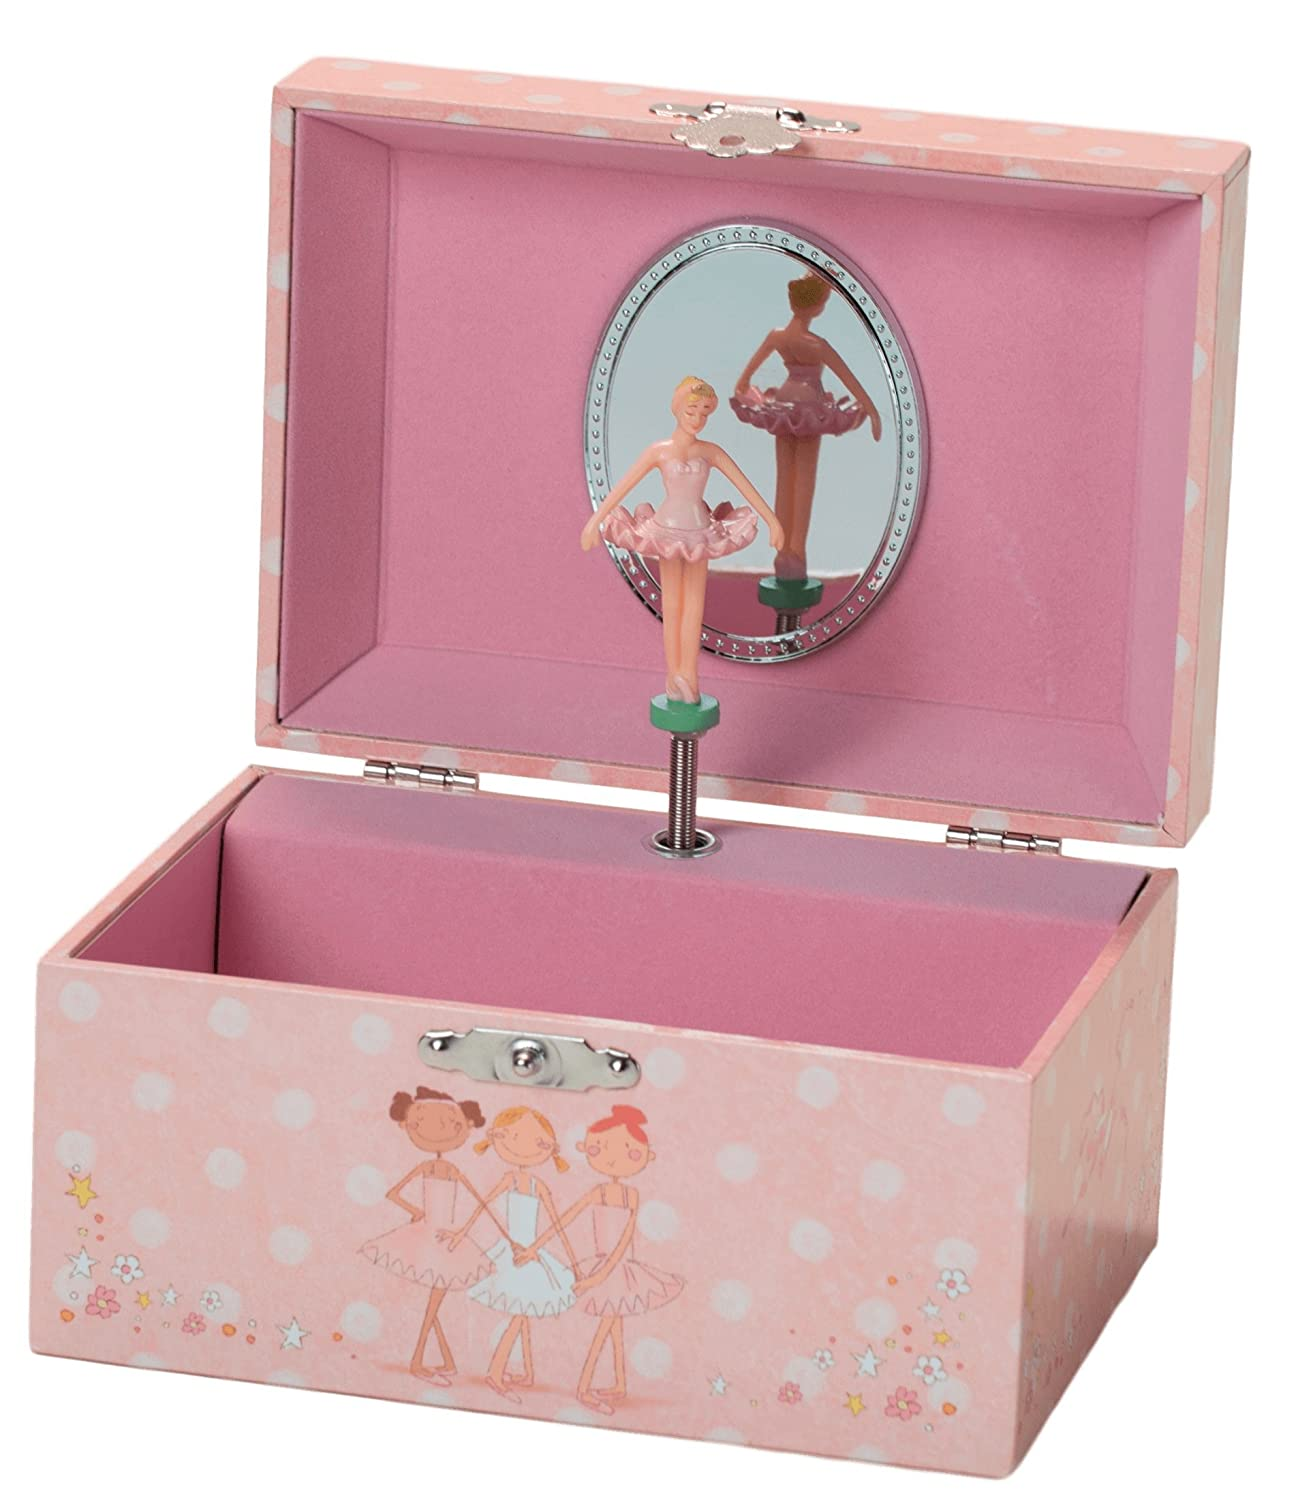 Amazon.com: The San Francisco Music Box Company Ballerina Keepsake ...